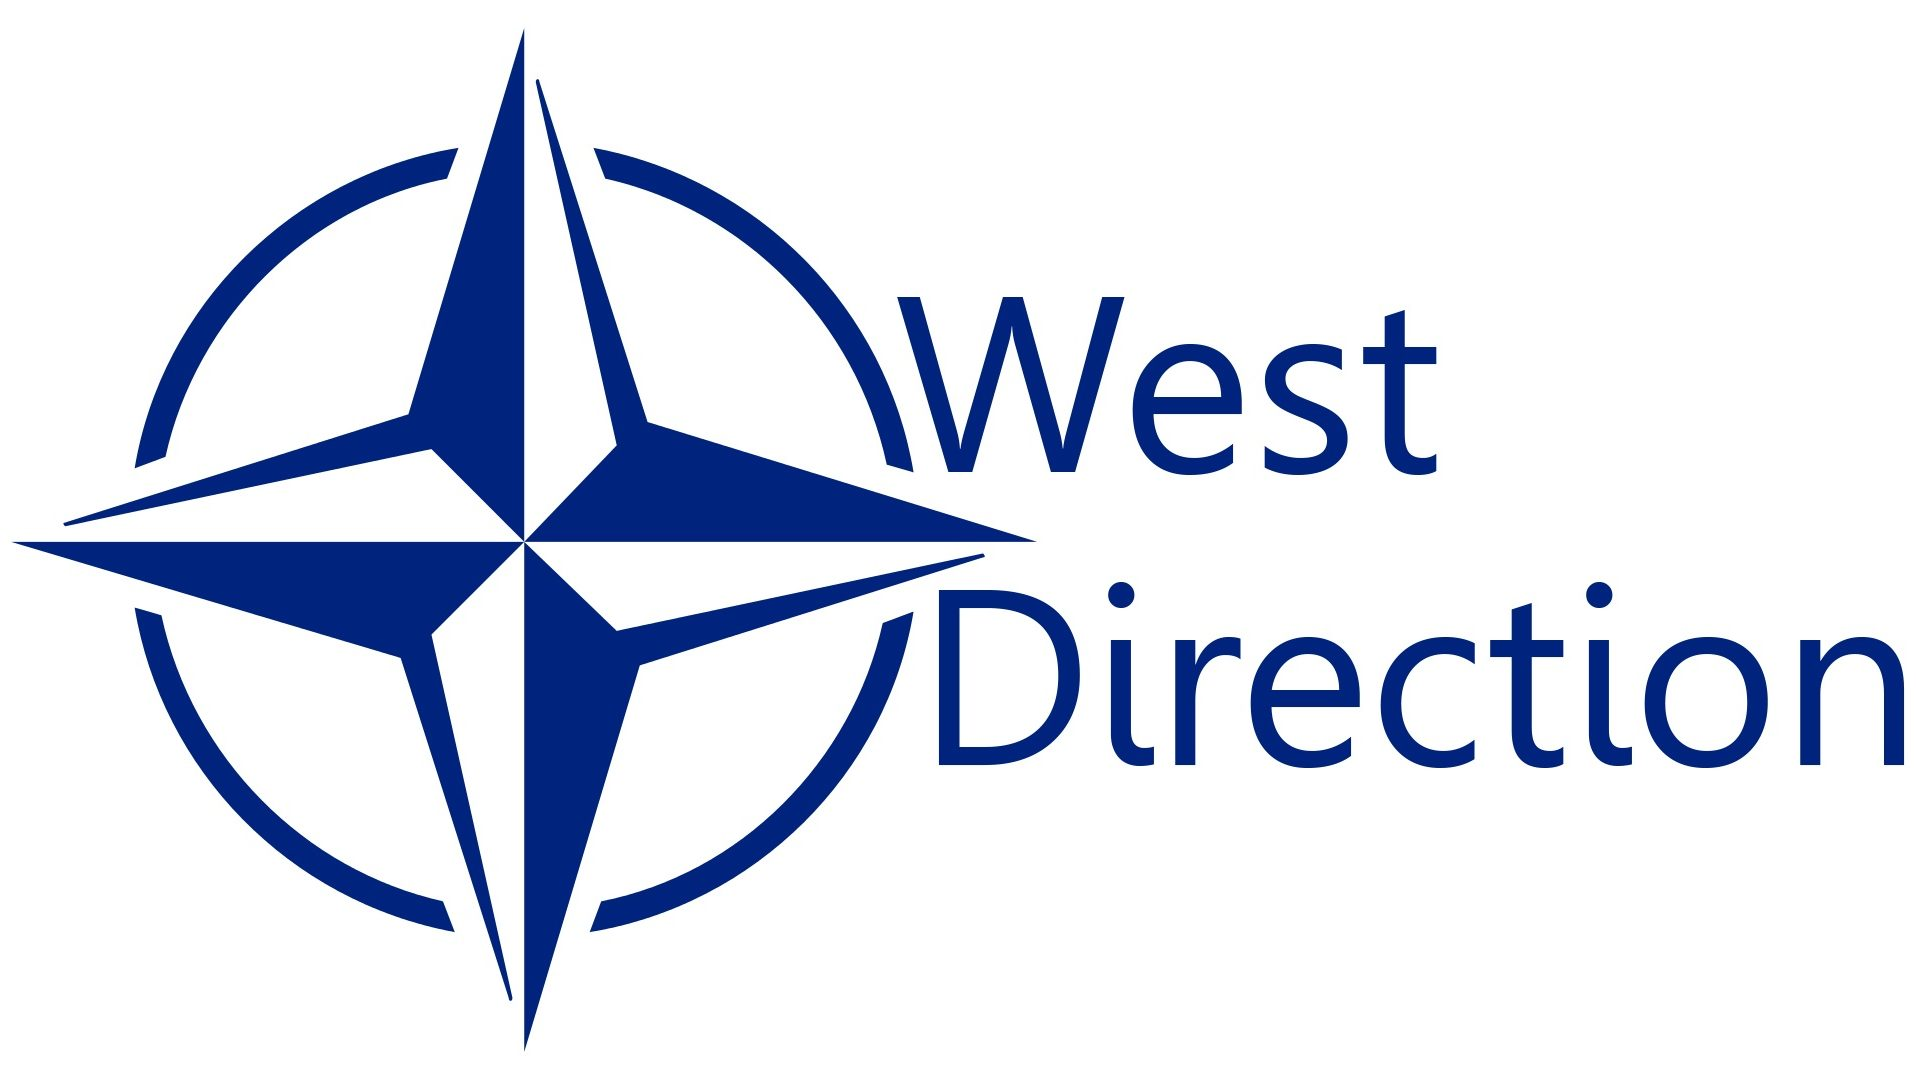 West Direction